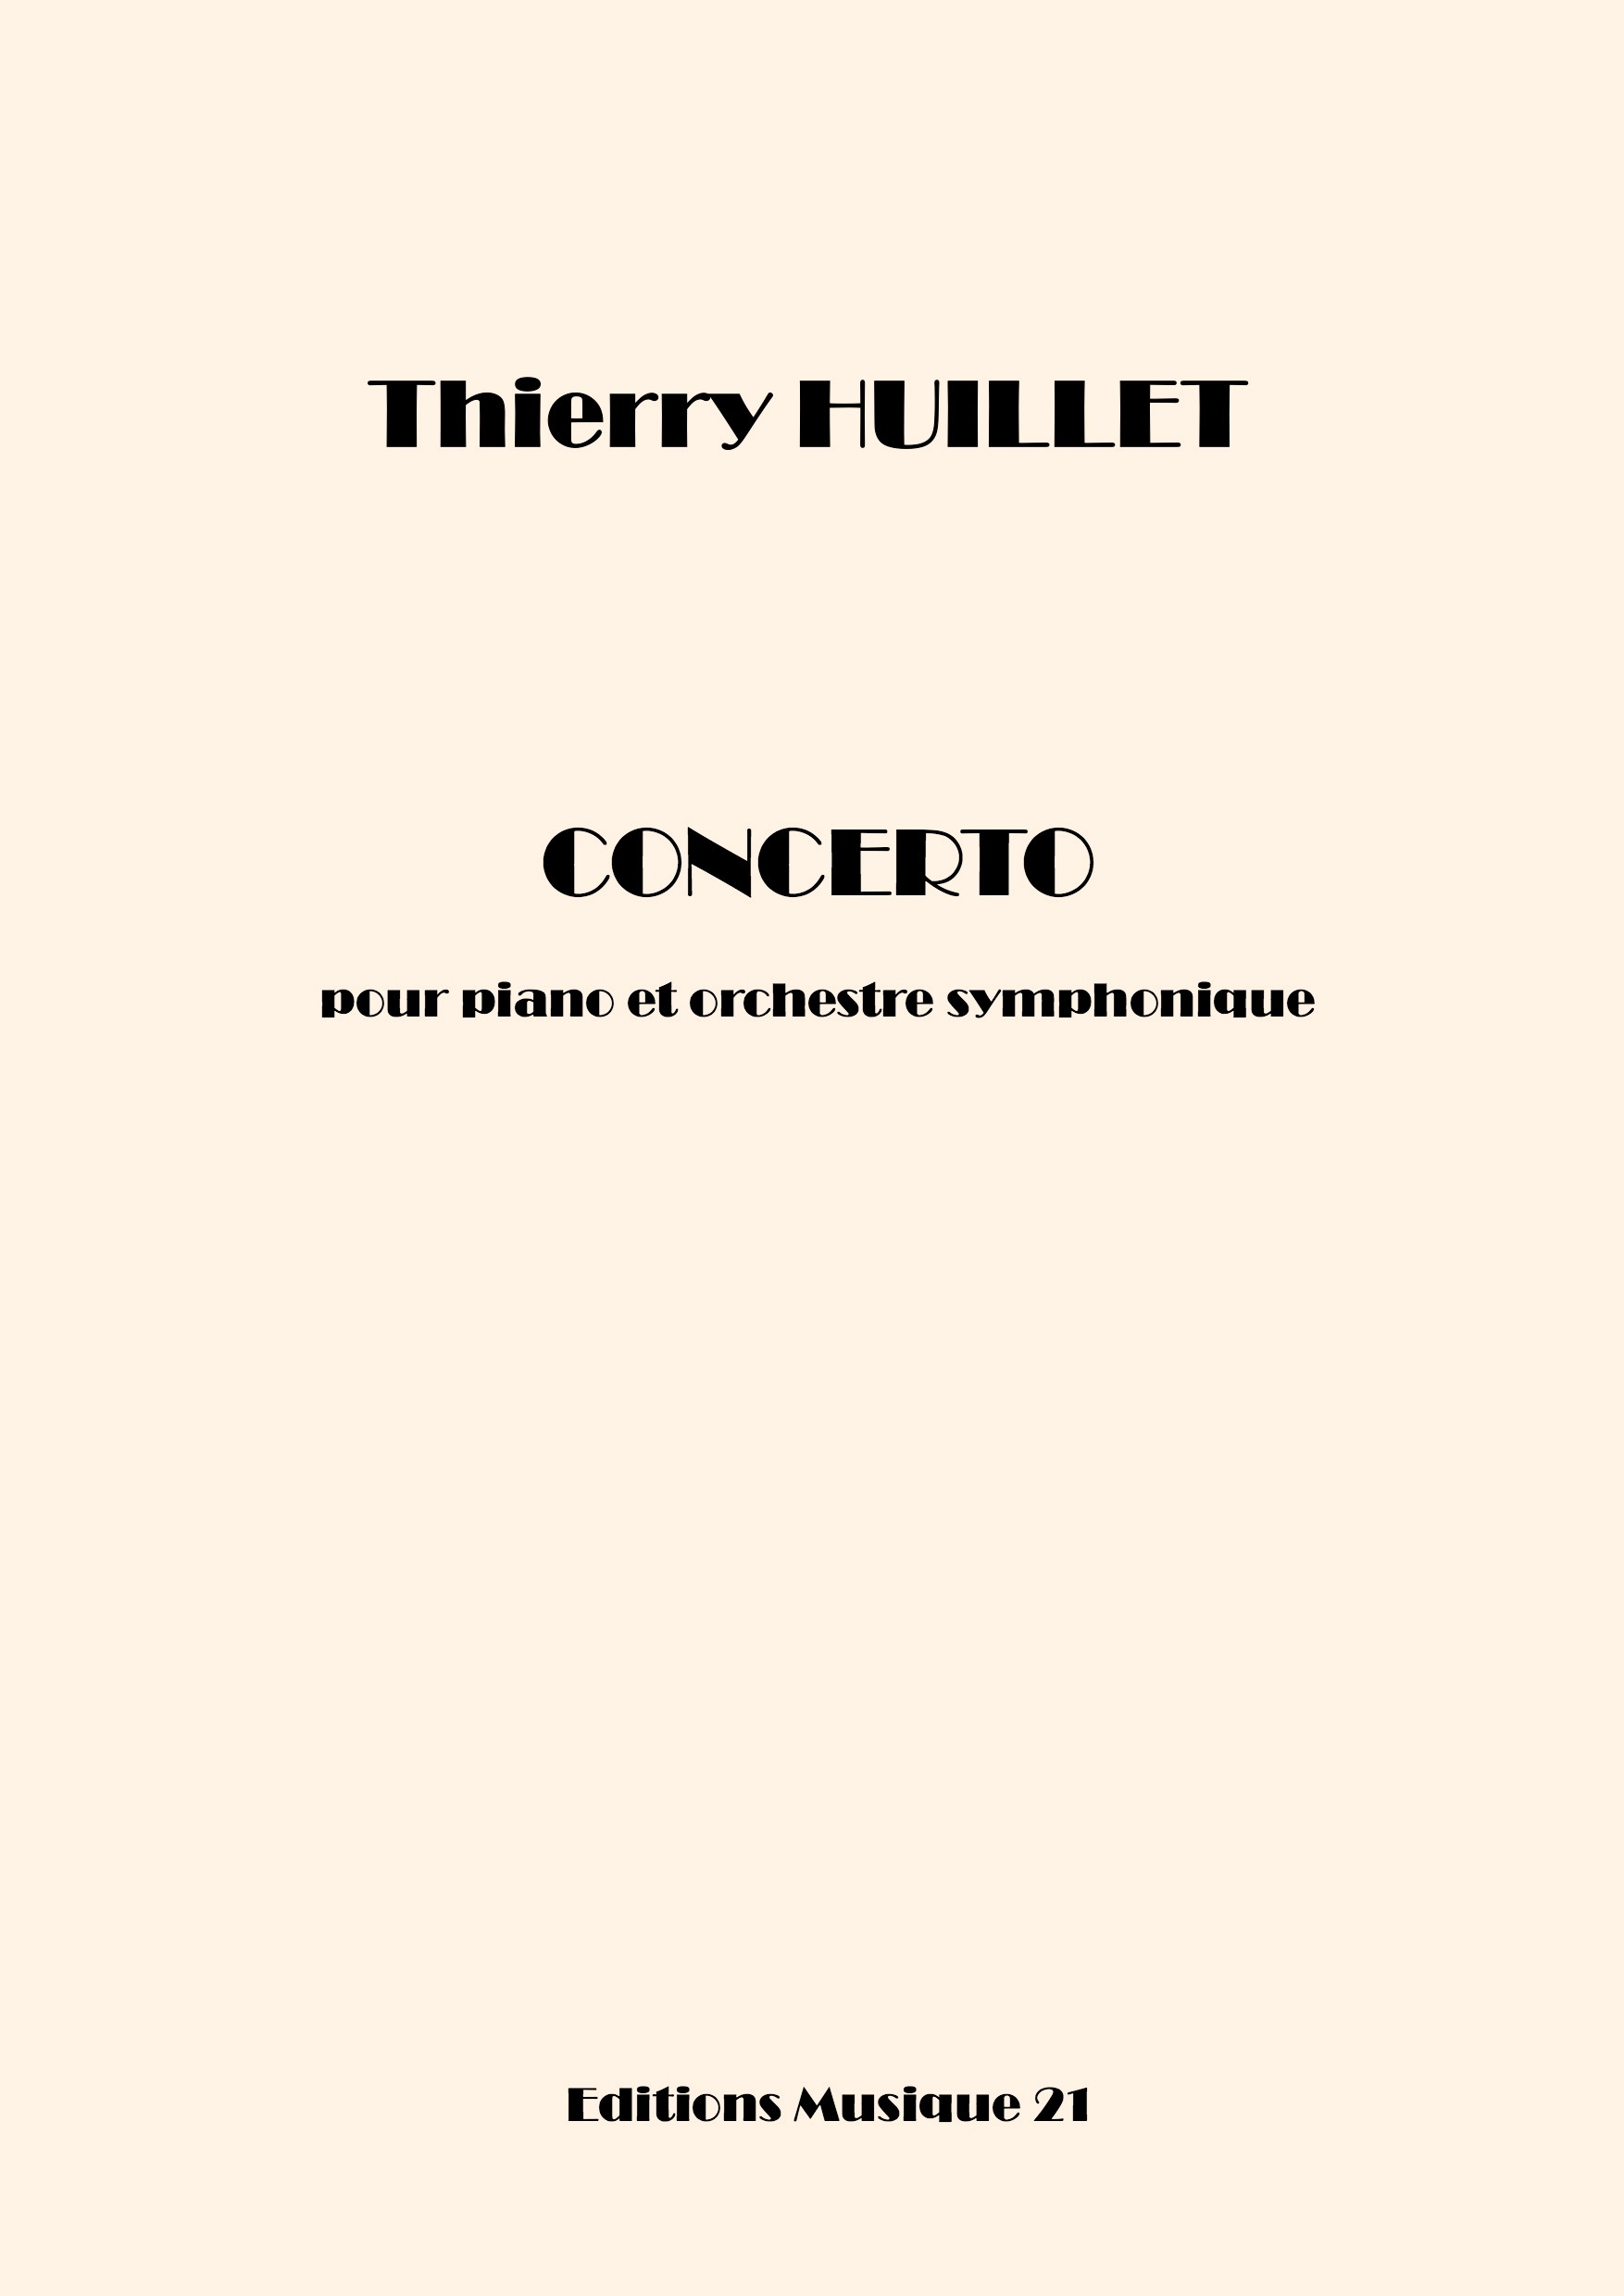 Thierry HUILLET – Concerto For Piano And Symphonic Orchestra (orchestral Parts)